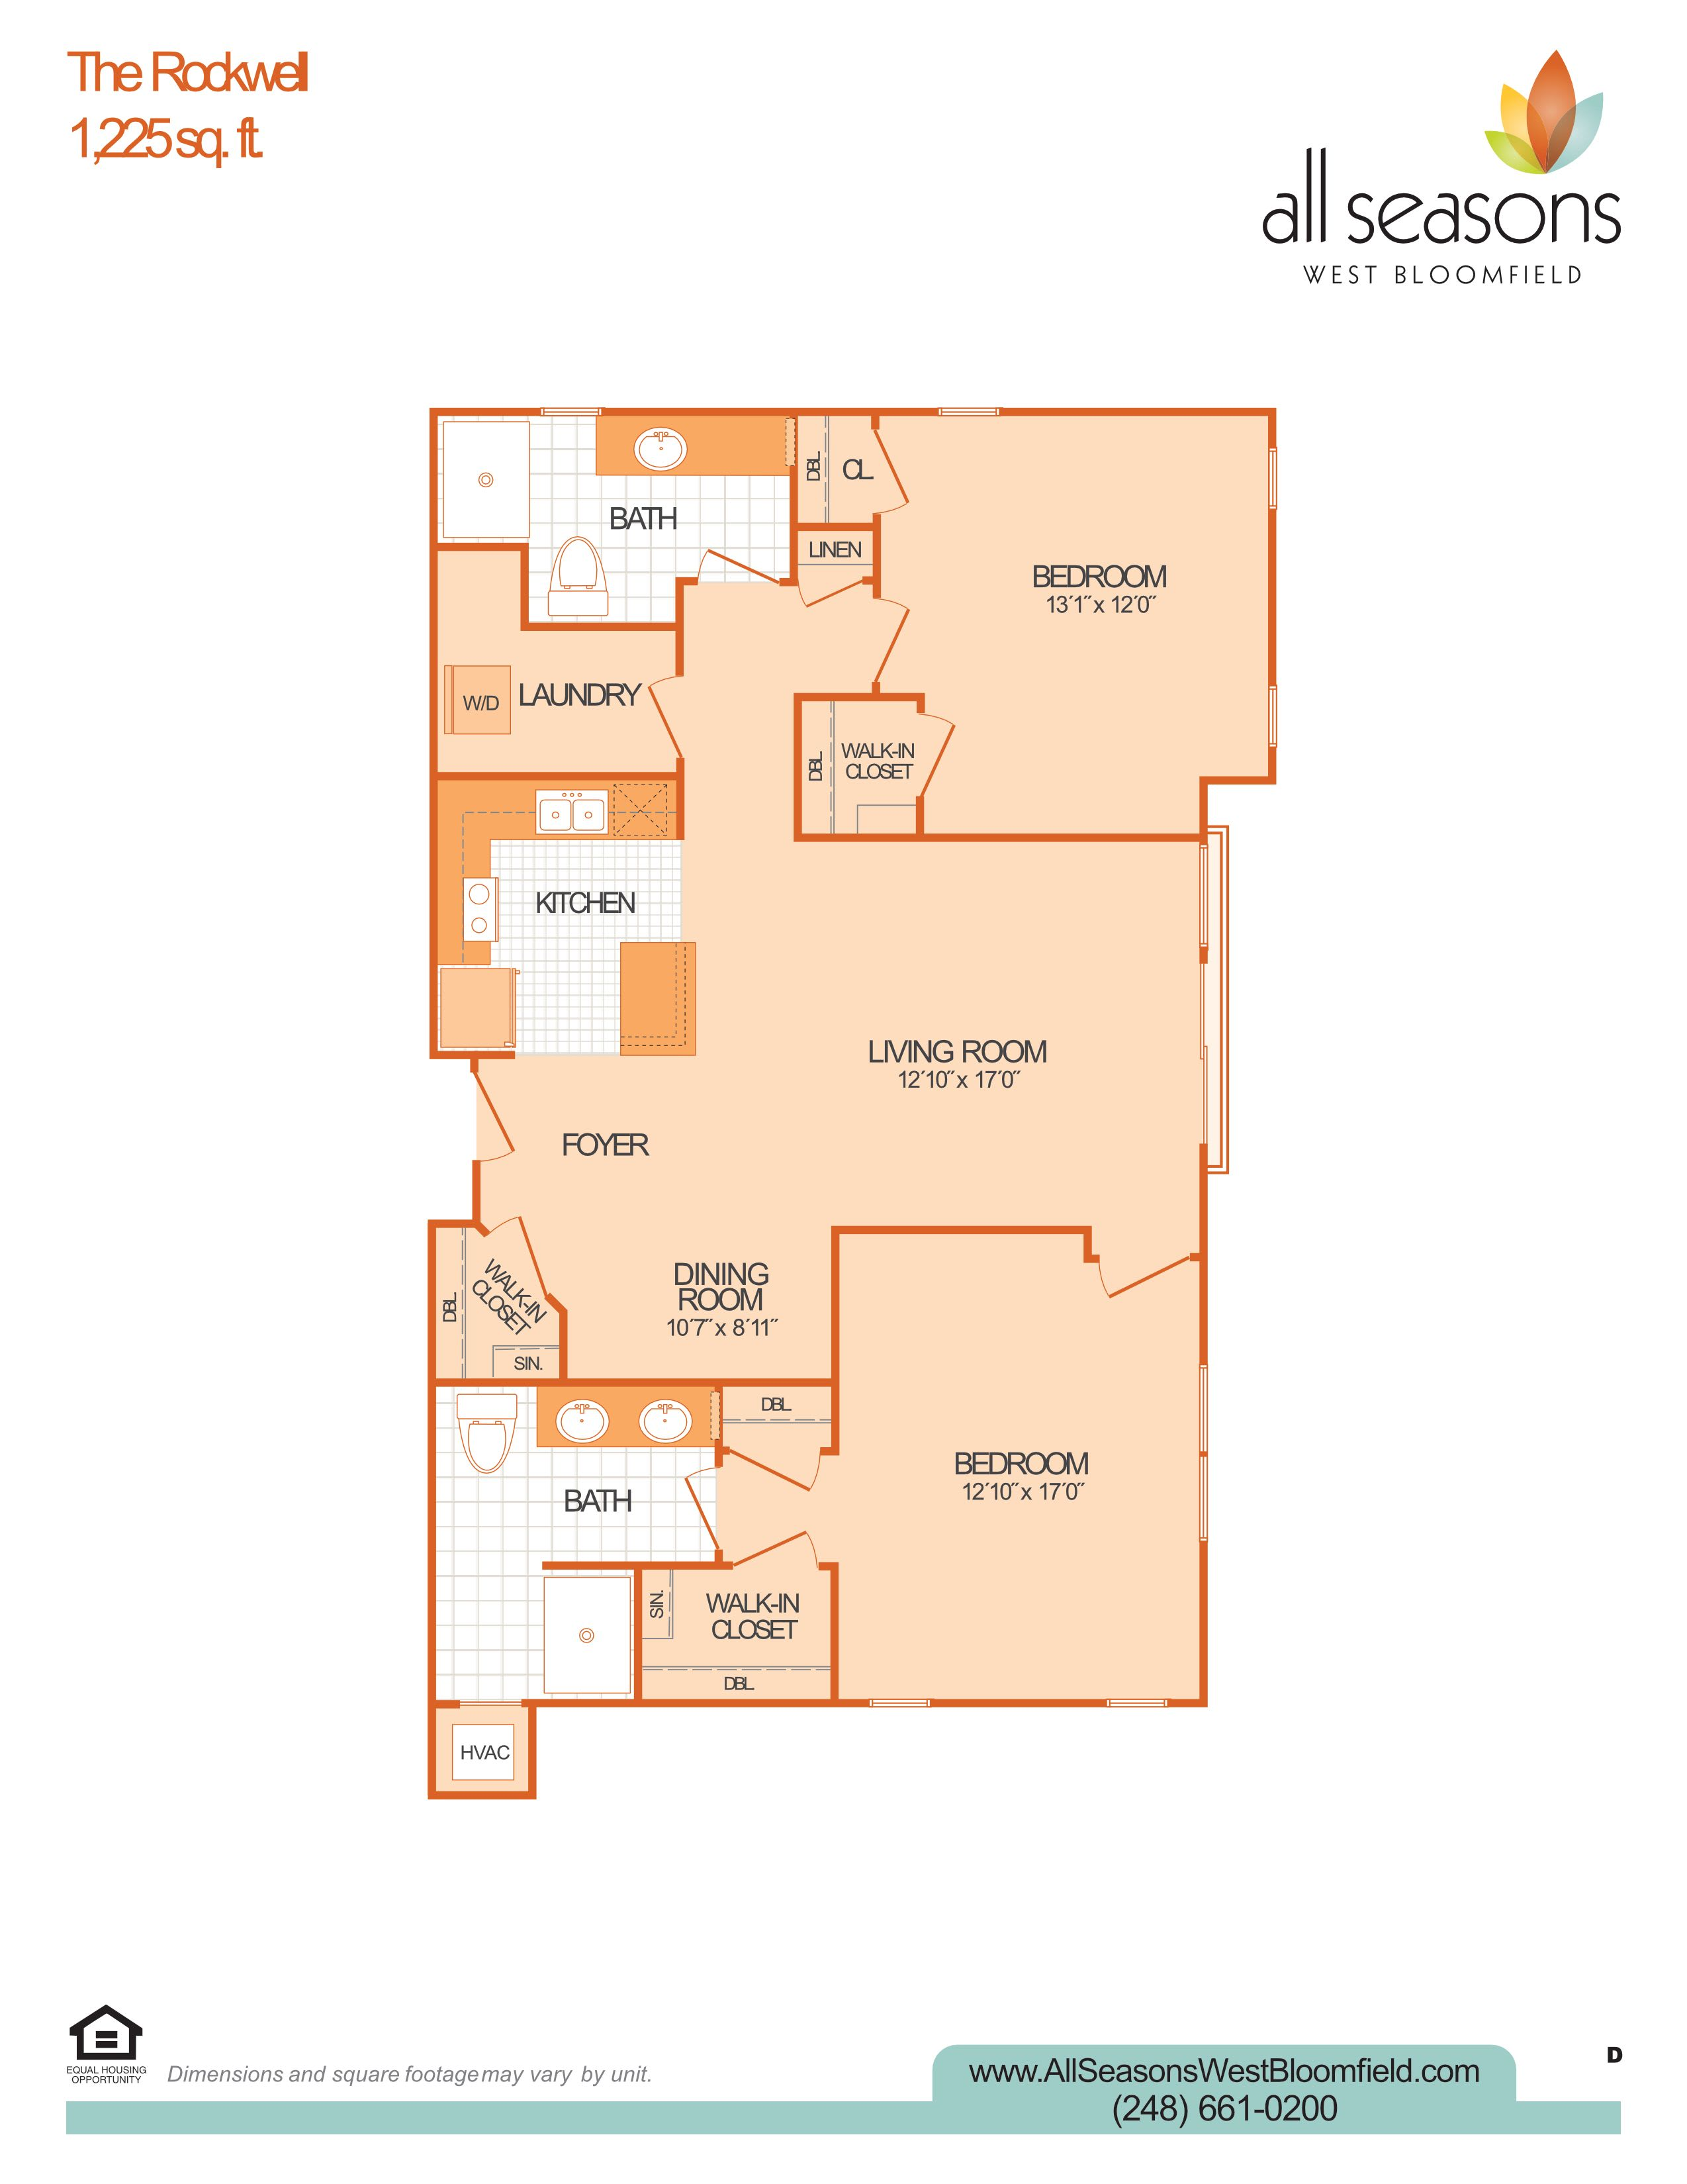 The Rockwell floor plan at All Seasons West Bloomfield in West Bloomfield, Michigan